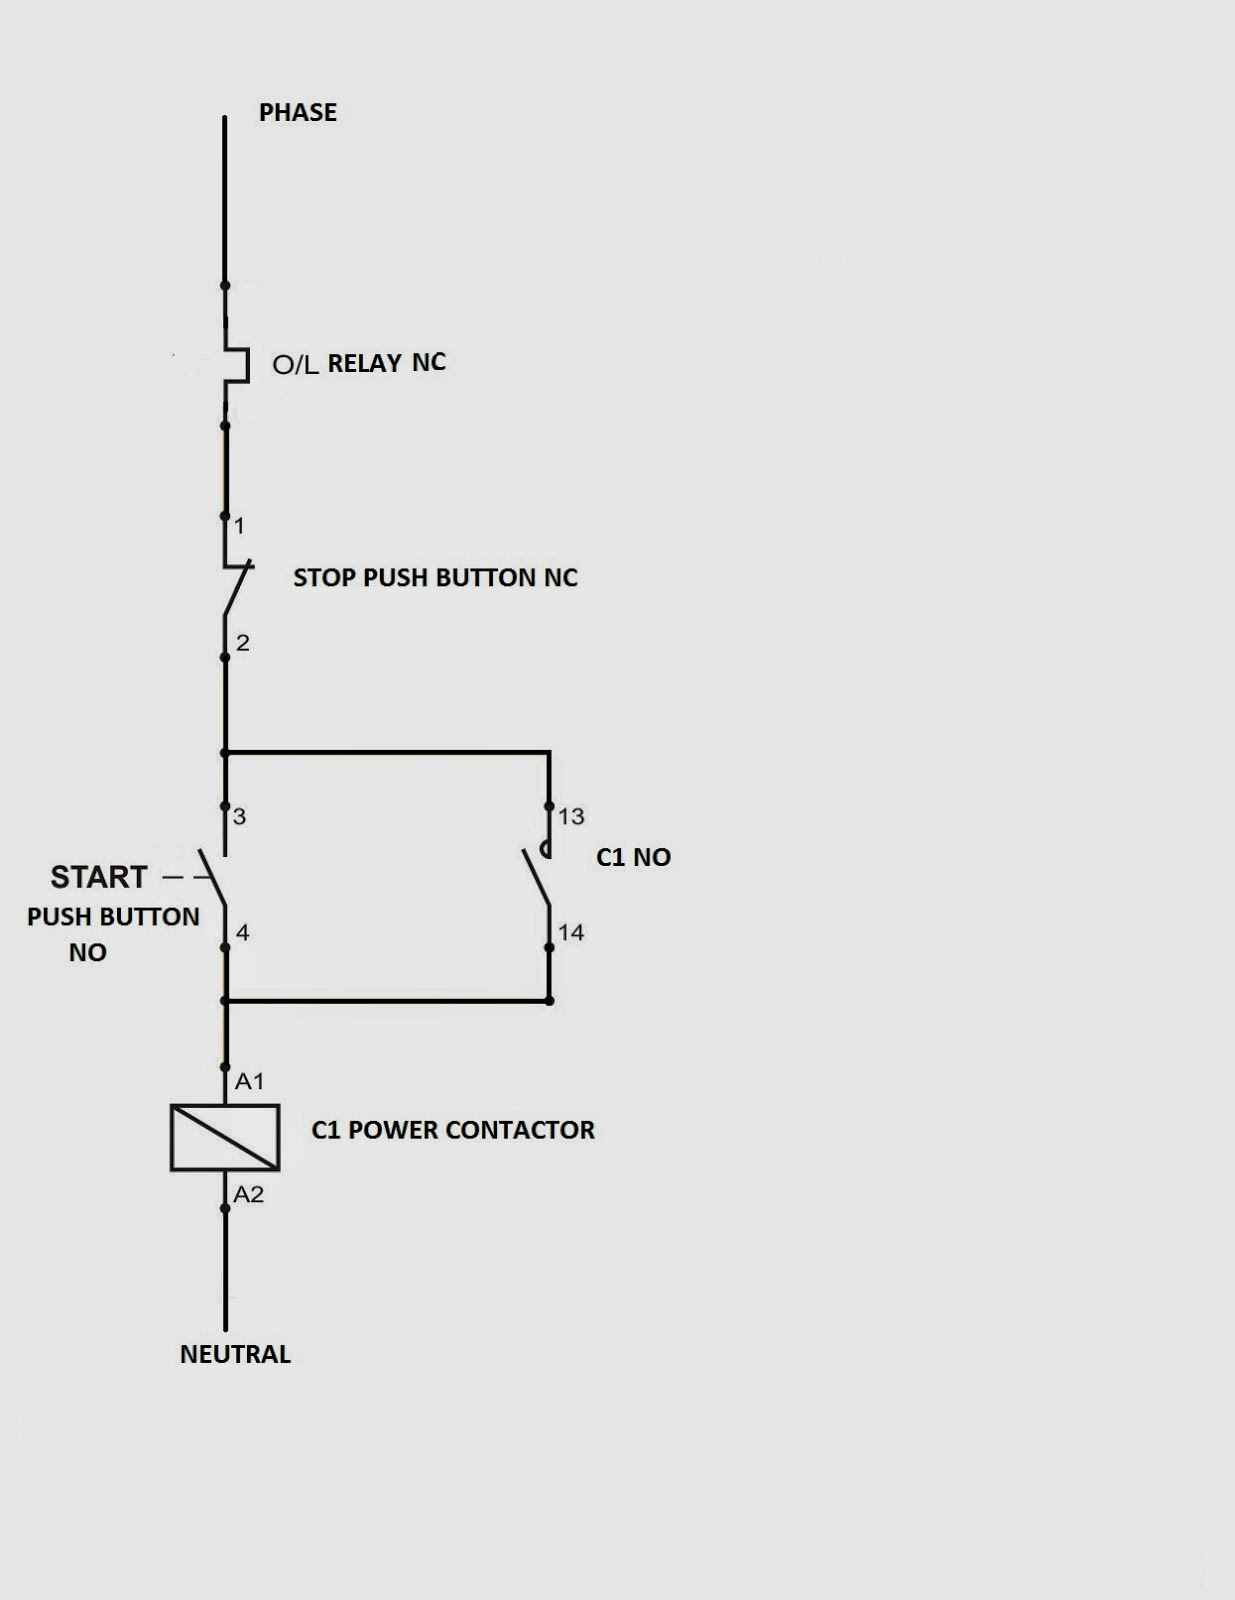 Electrical Standards Direct Online Dol Starter Control Circuit Wiring Diagrams Motor Repalcement Parts And Diagram